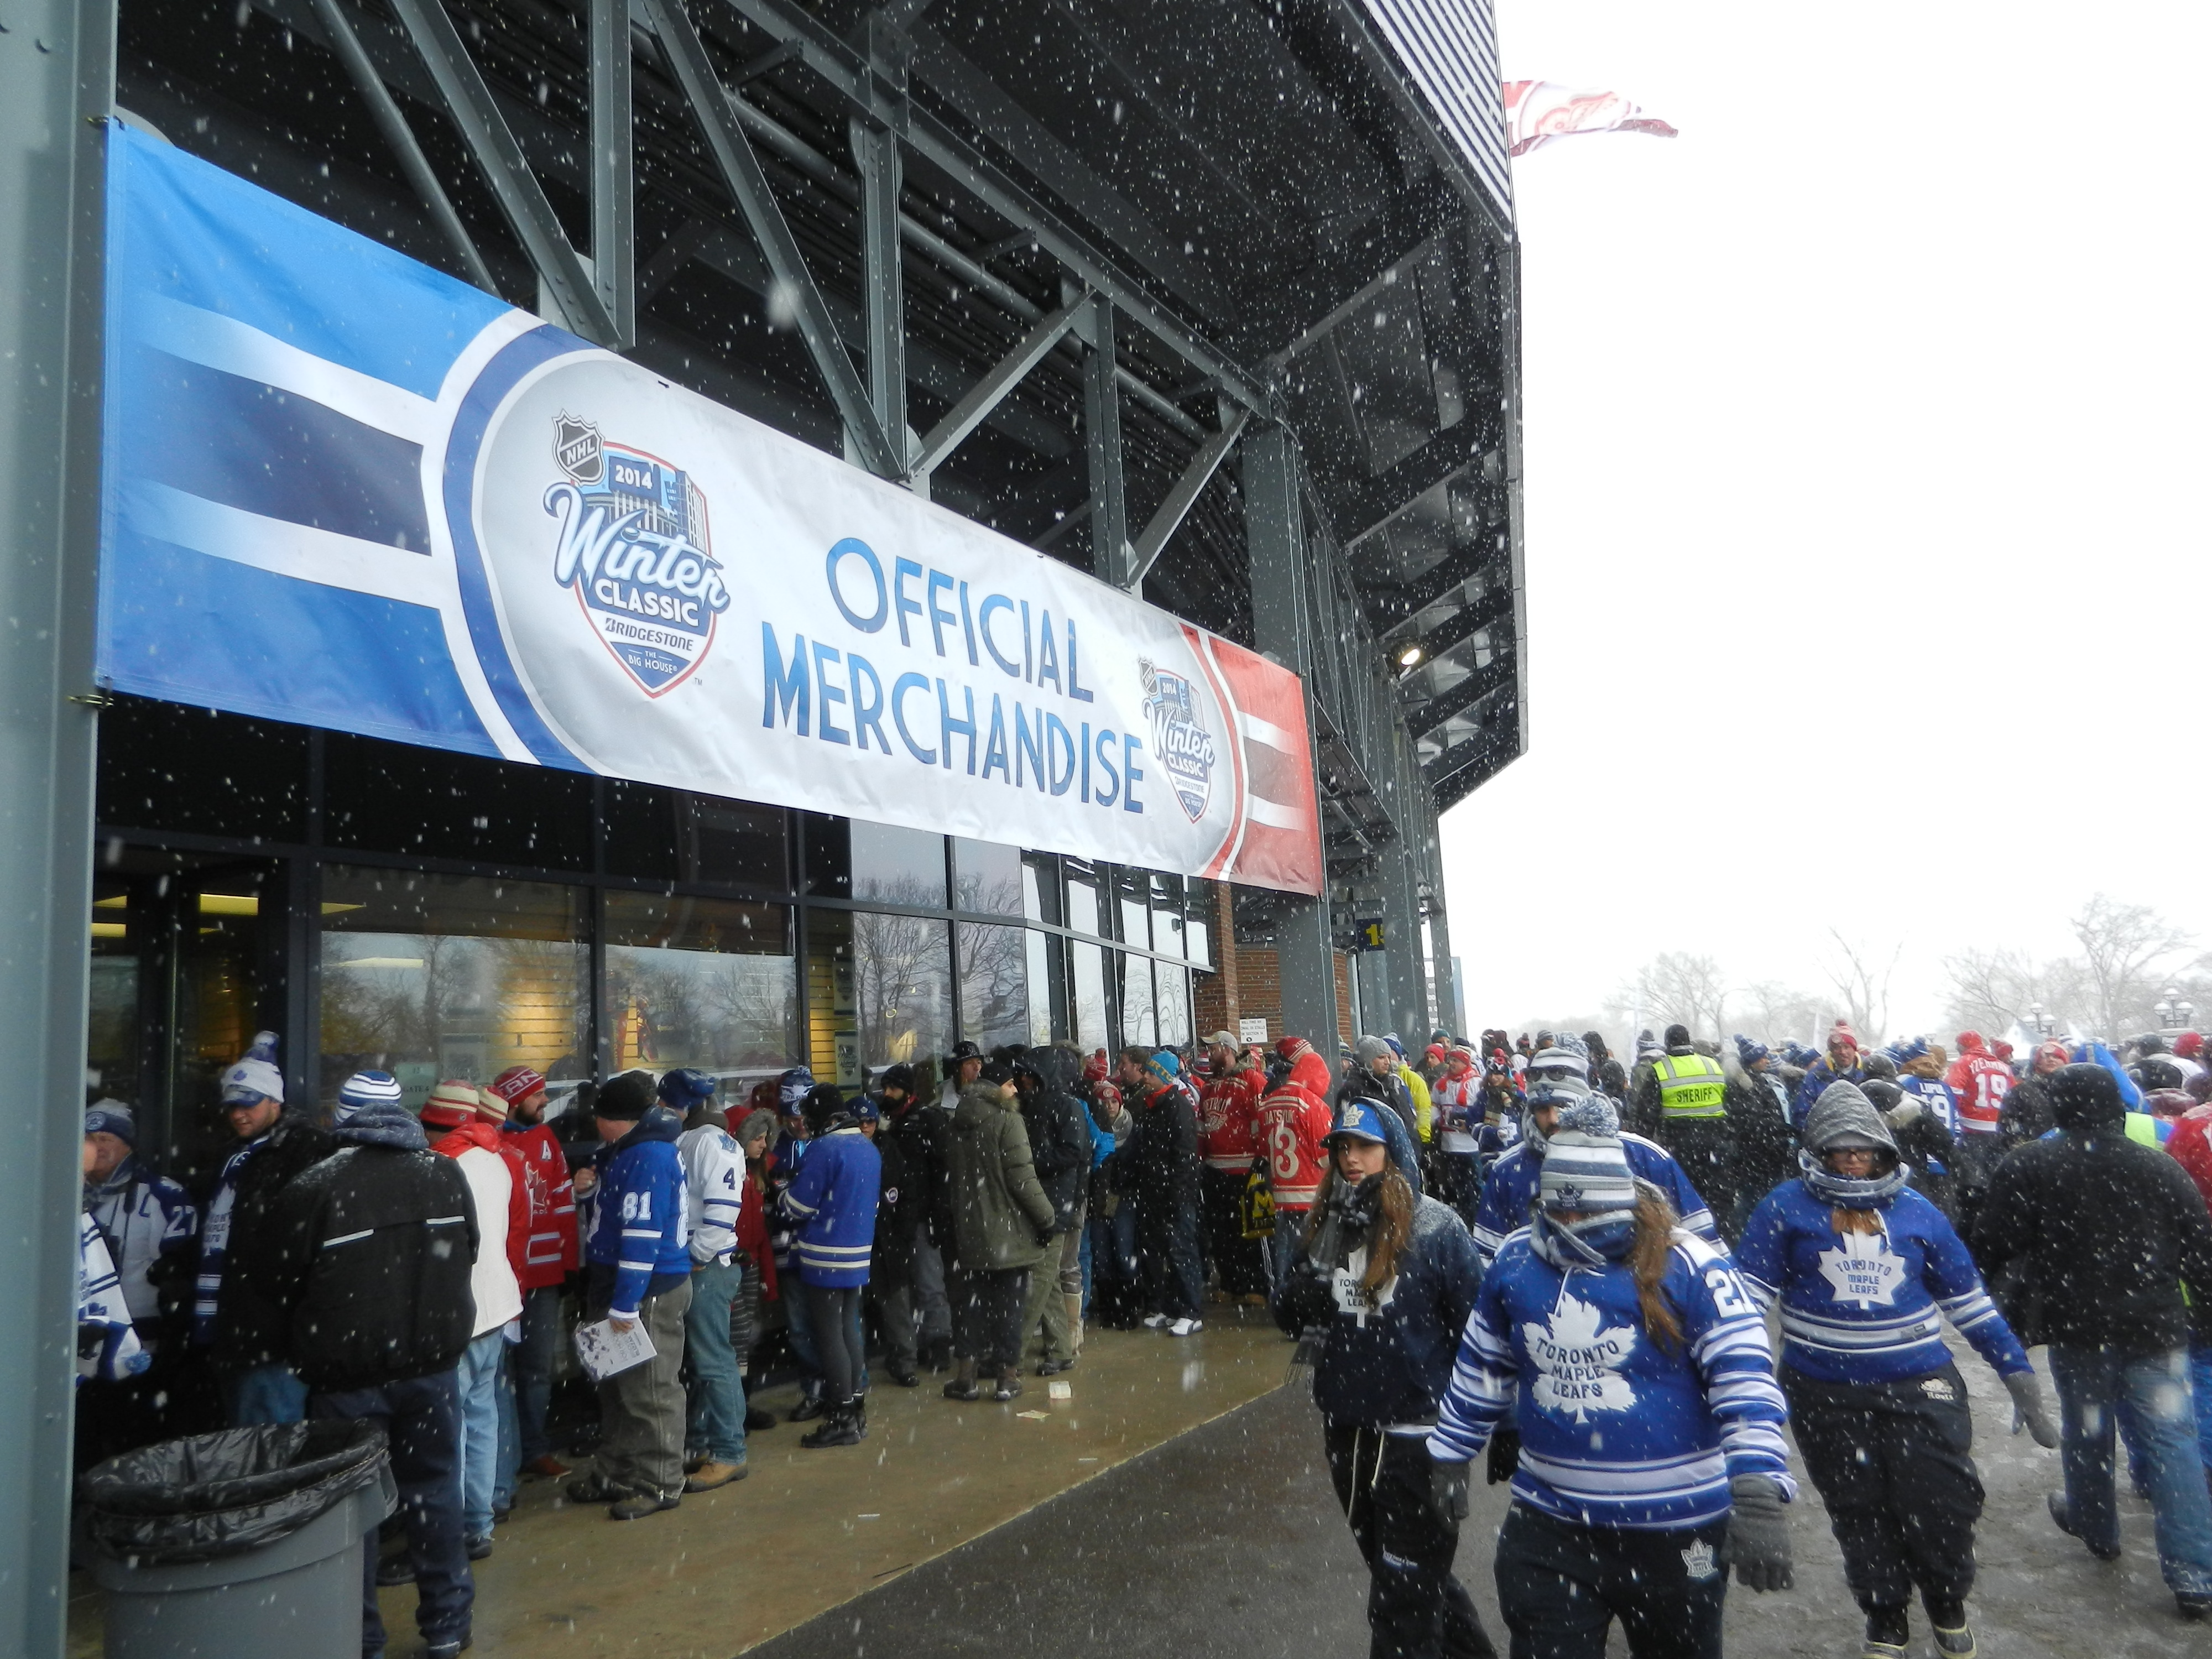 The lines for merchandise stretch deep. (CBSSports.com Original)